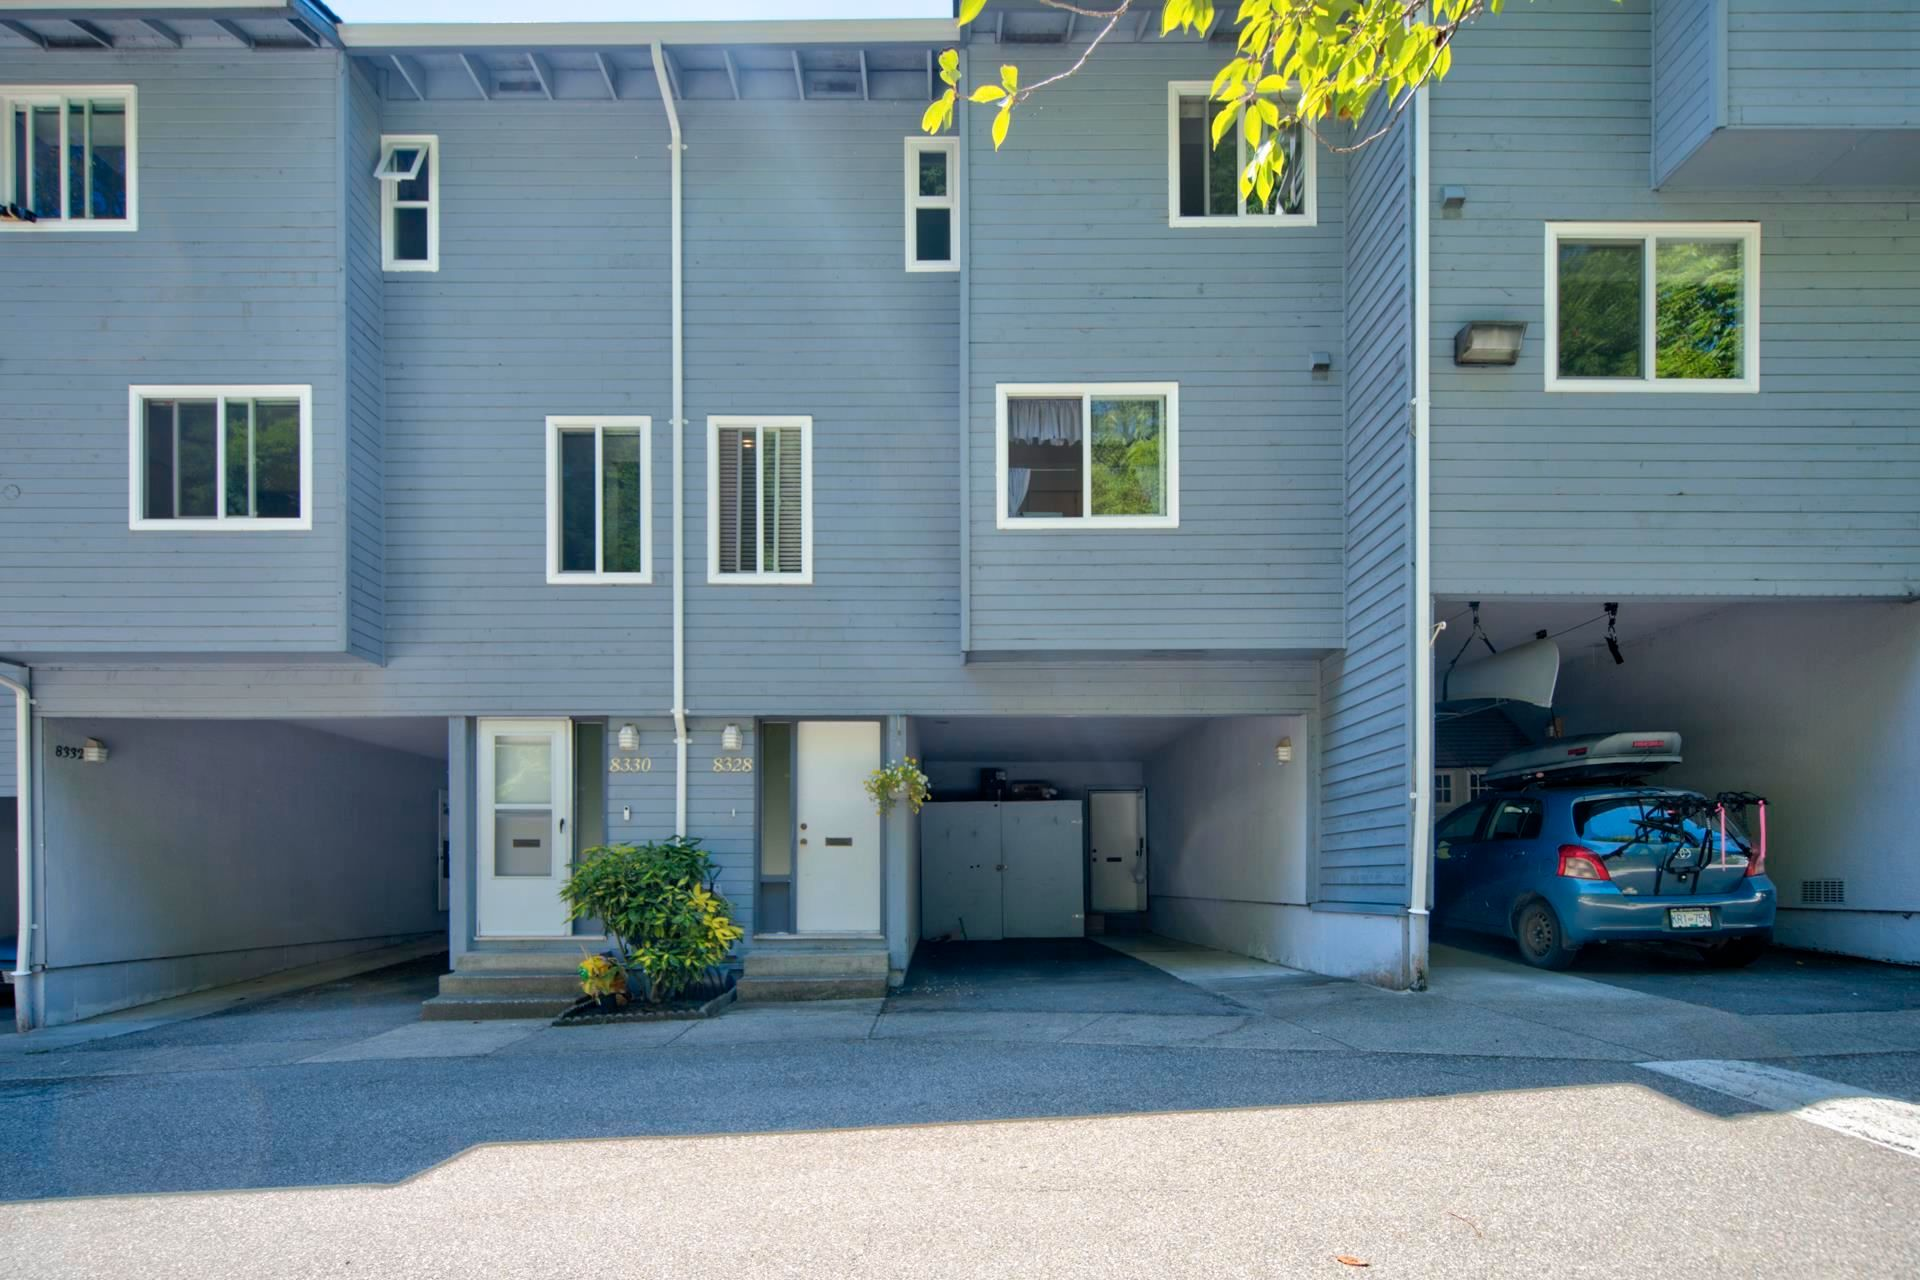 Main Photo: 8328 ASPENWOOD Place in Burnaby: Forest Hills BN Townhouse for sale (Burnaby North)  : MLS®# R2596782